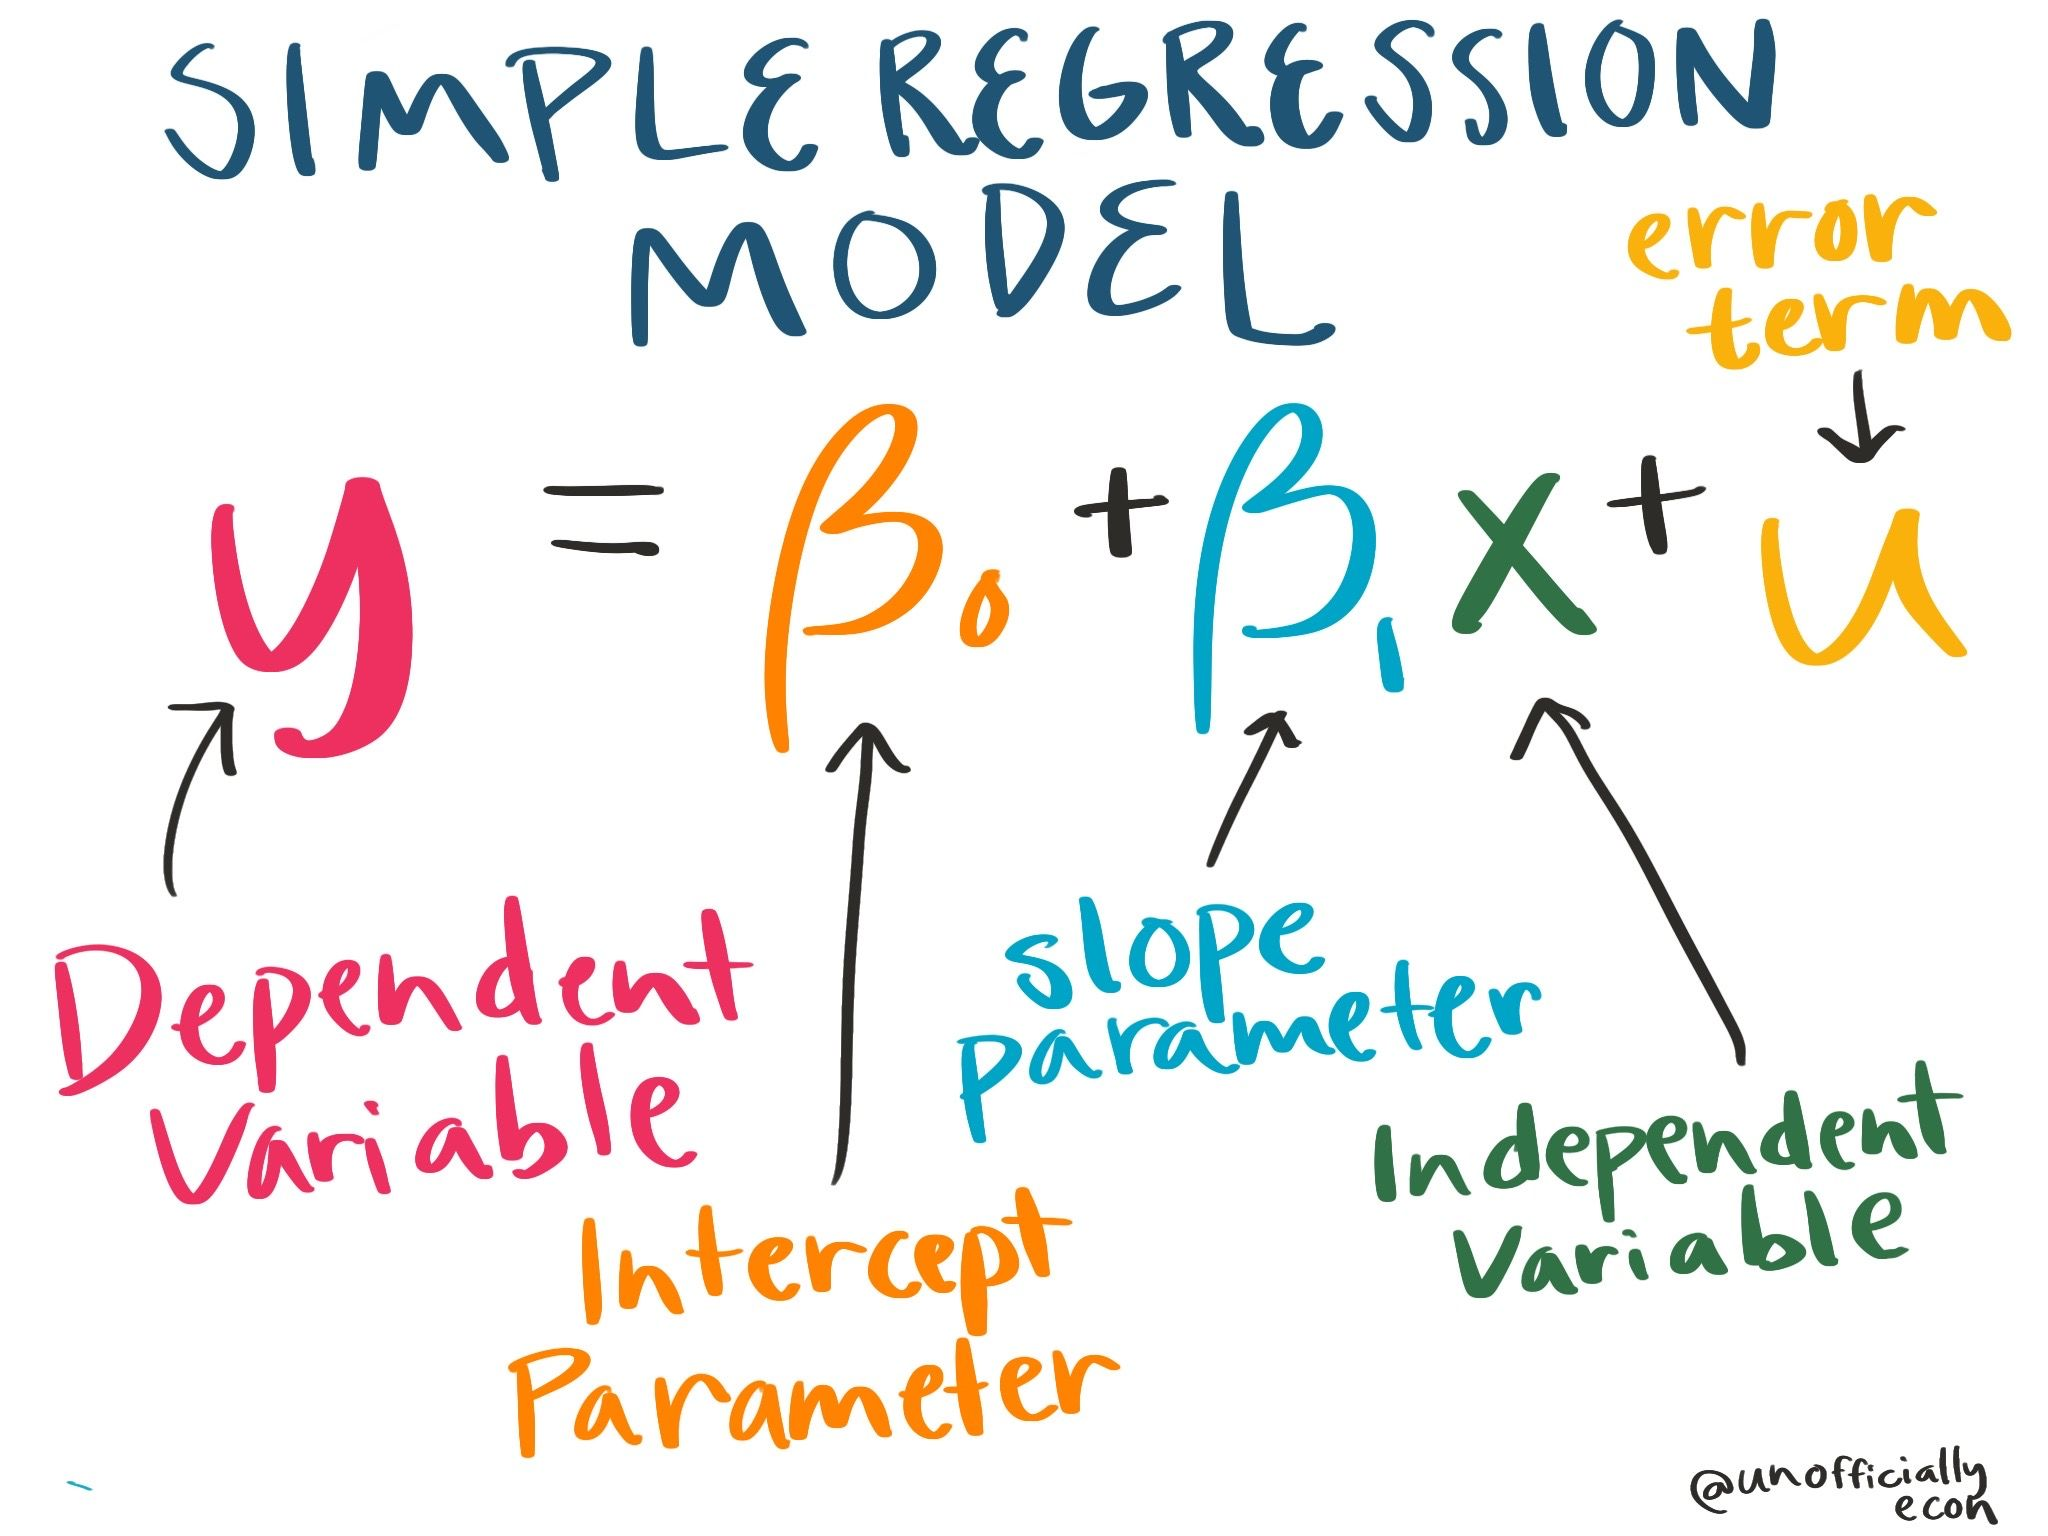 Simple Regression Model Grad School Quote Understanding Economic Statistic Math How To Cite A Book Chapter Apa 7th Edition